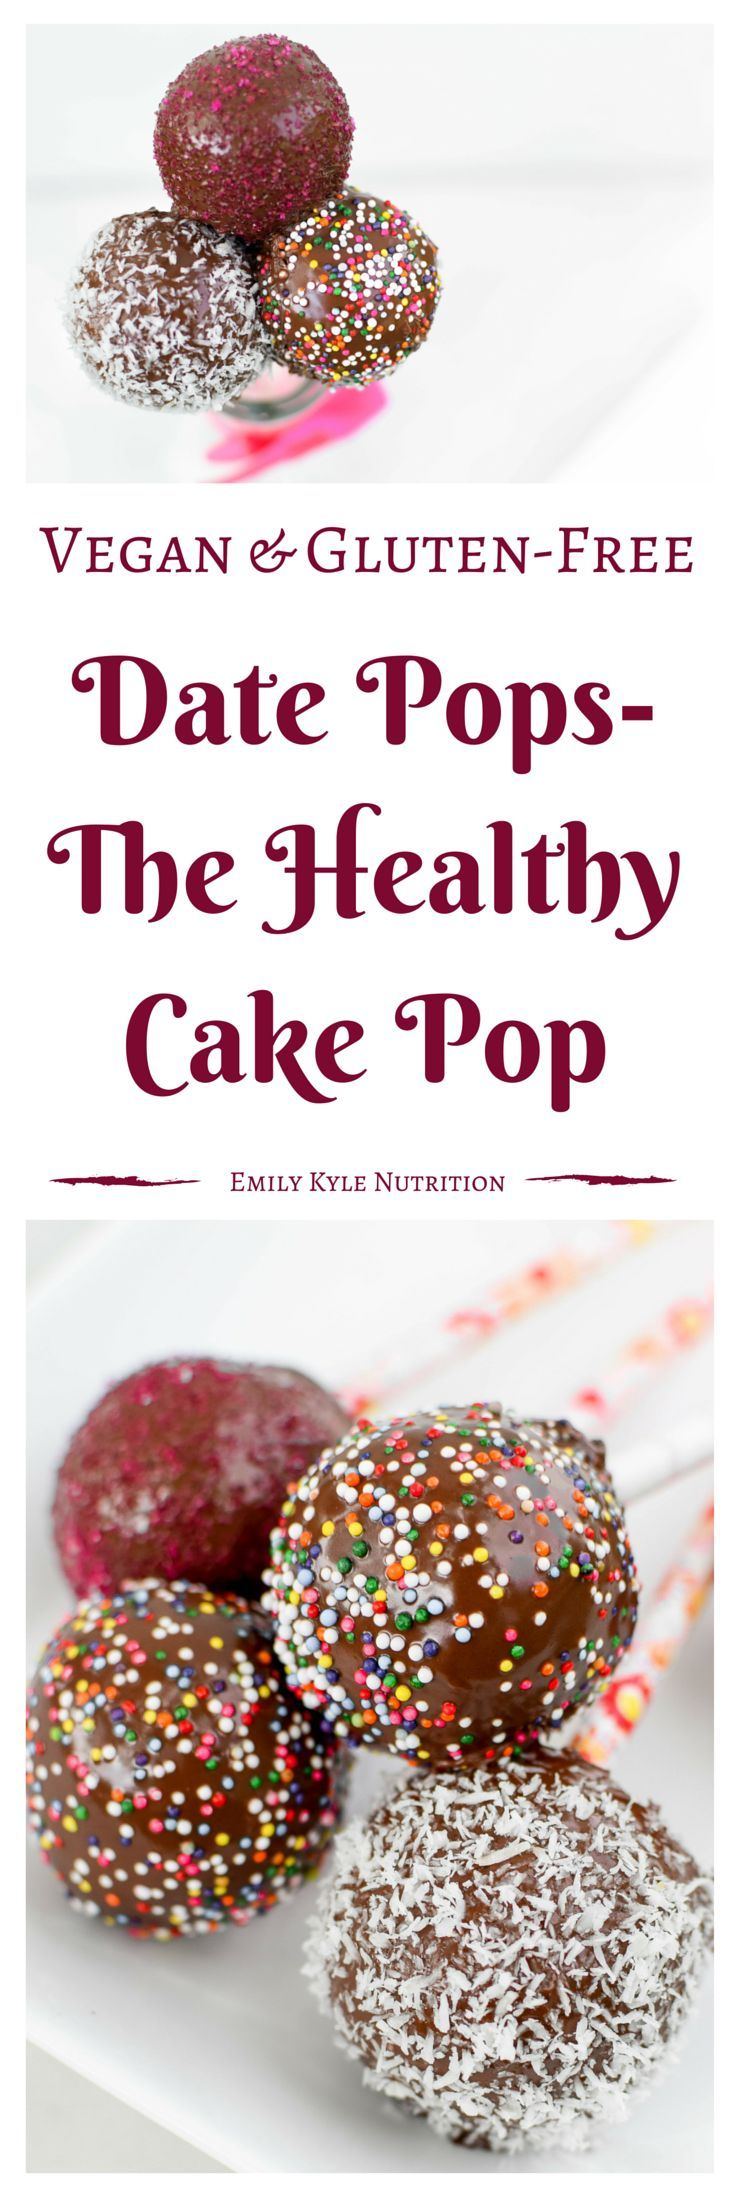 These raw, vegan, no-bake Date pops are made to provide the same joy of eating a sweet on a stick with wholesome ingredients that are good for you too! | @EmKyleNutrition